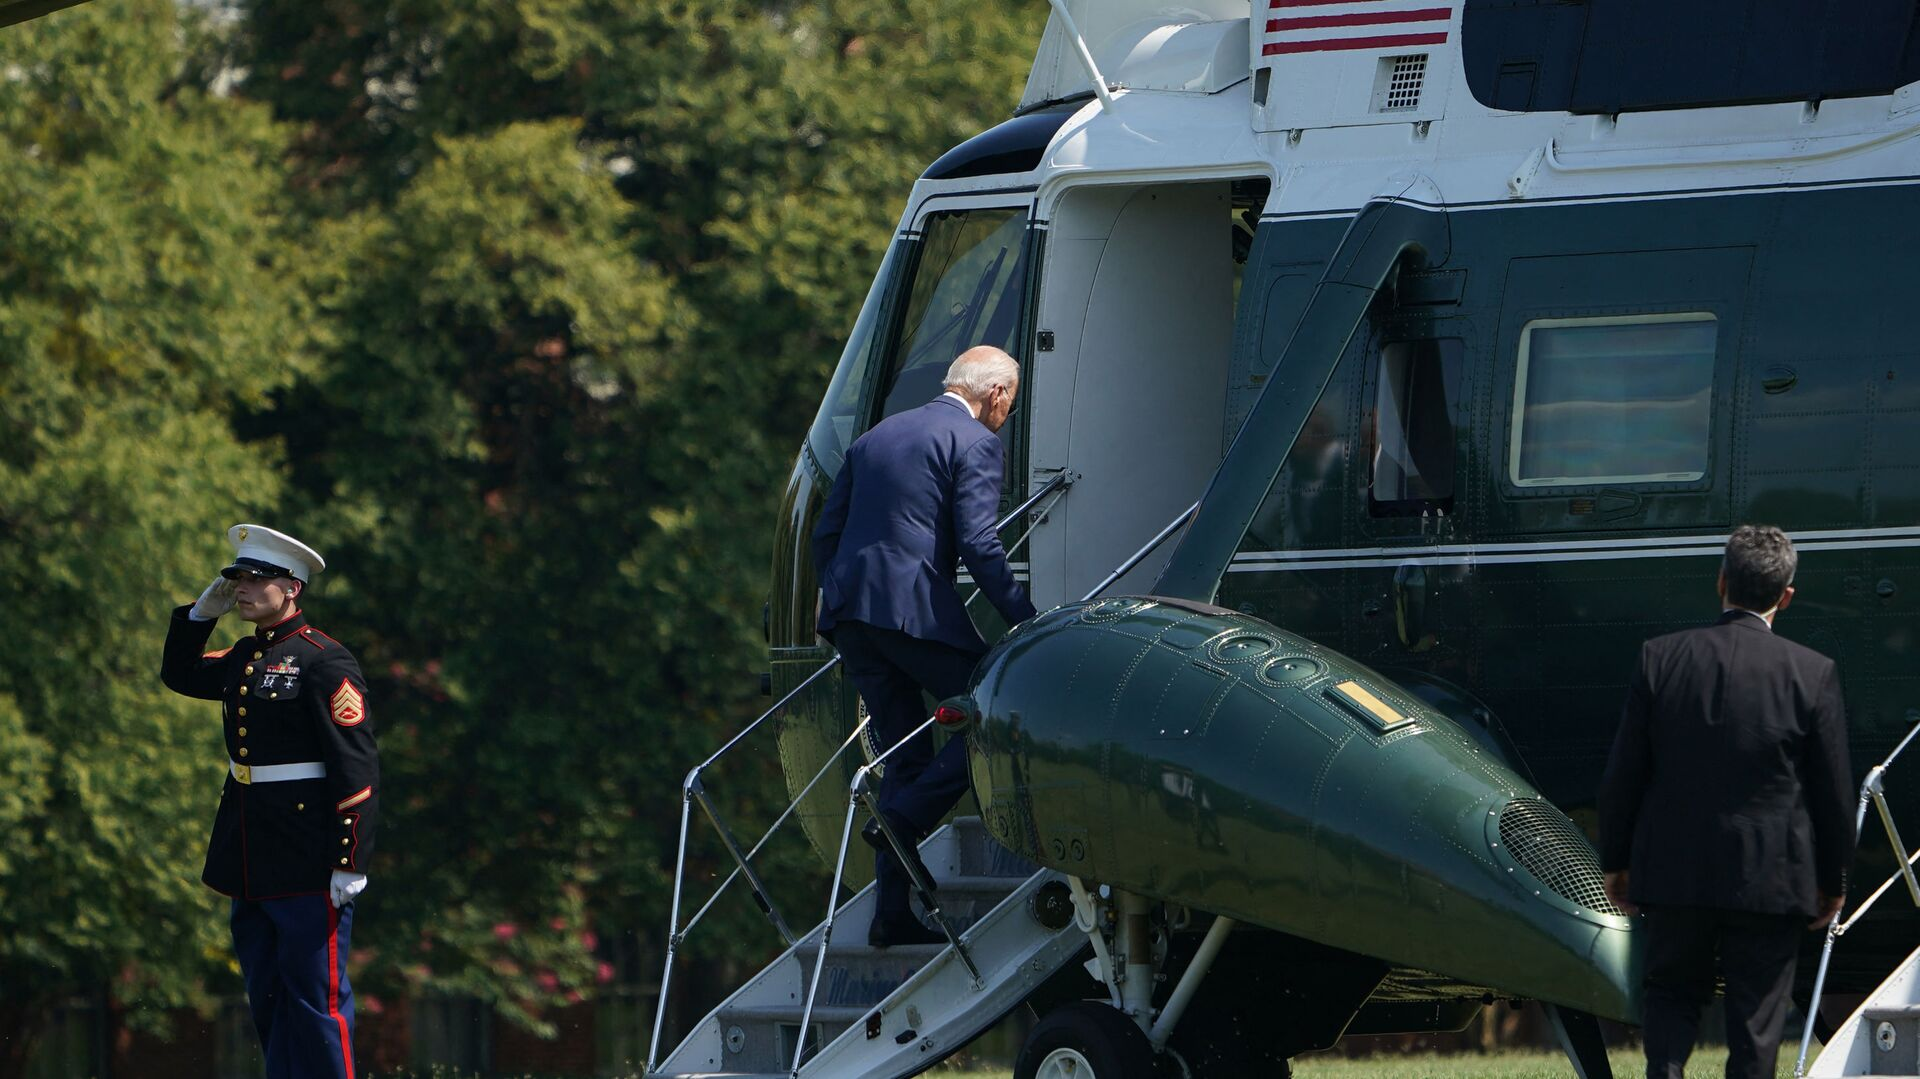 US President Joe Biden makes his way to board Marine One before departing from Fort McNair in Washington, DC on August 12, 2021. - Biden is heading to his residence in Wilmington, Delaware. - Sputnik International, 1920, 14.08.2021